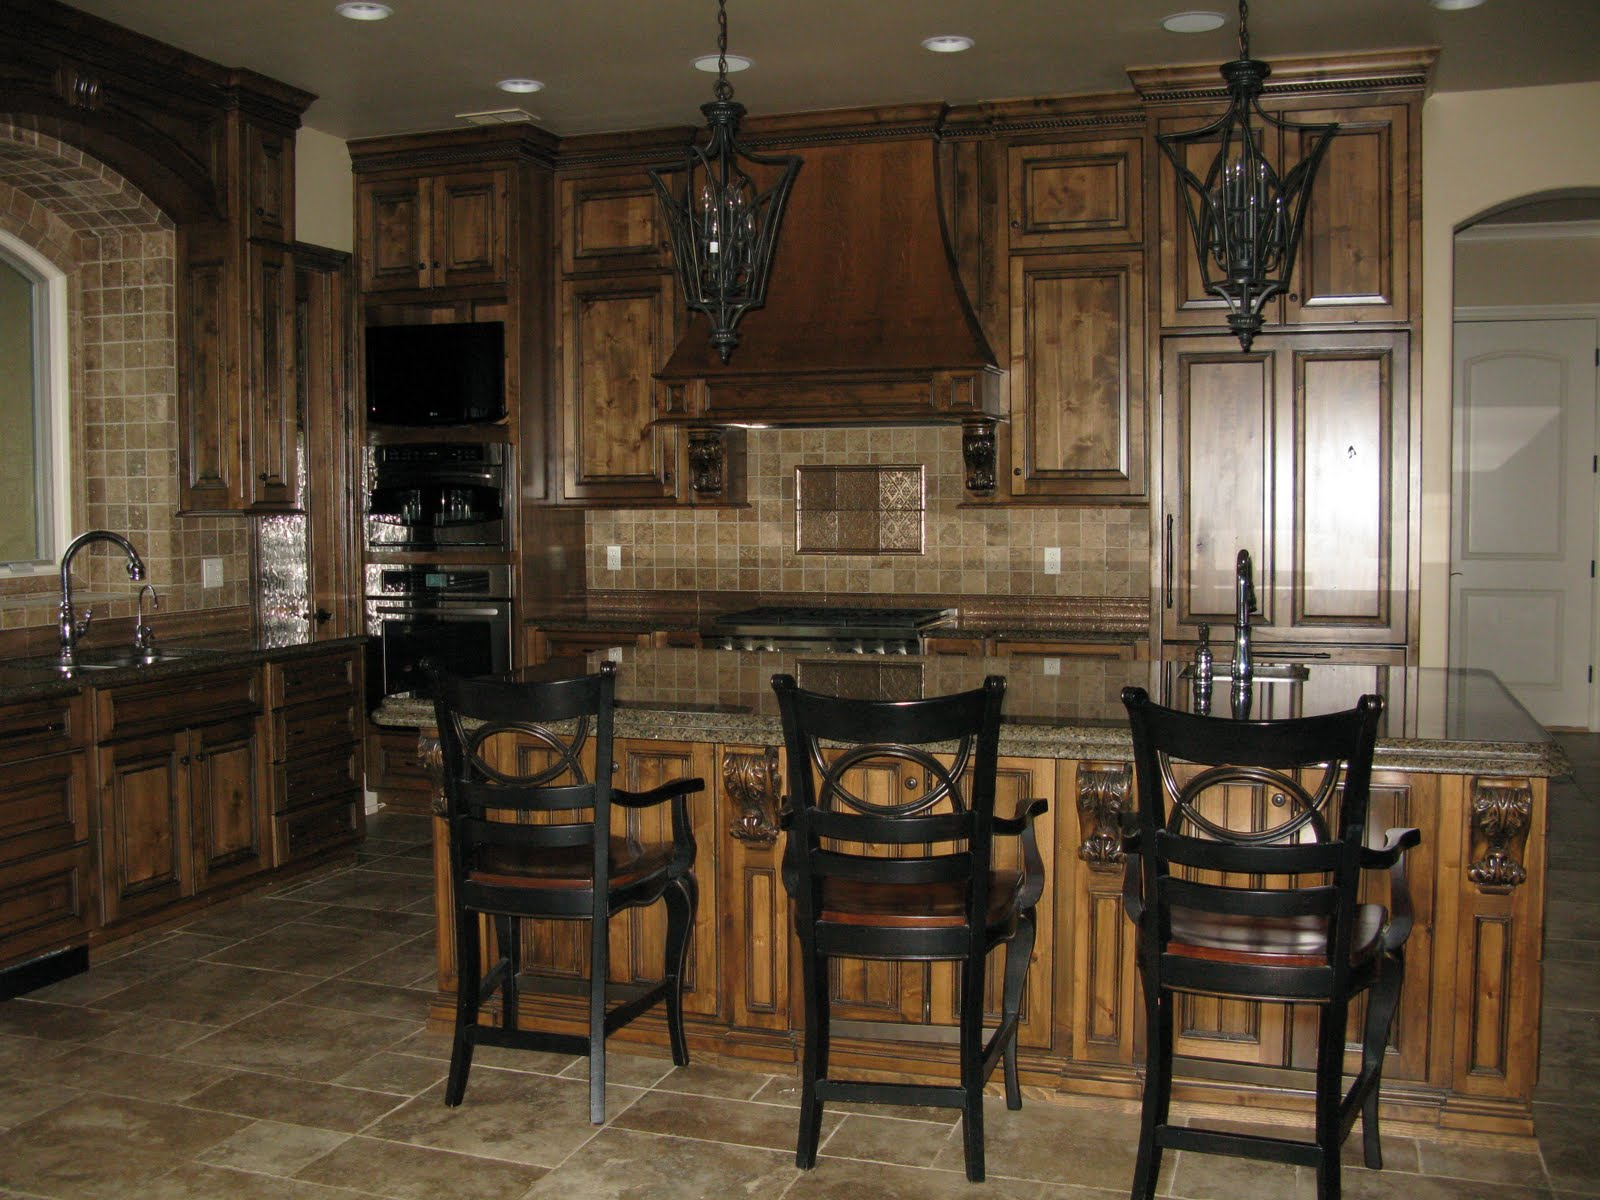 Kitchen Island With Bar Stools Shaker Style Cabinets Projects Plenty And New Leopard